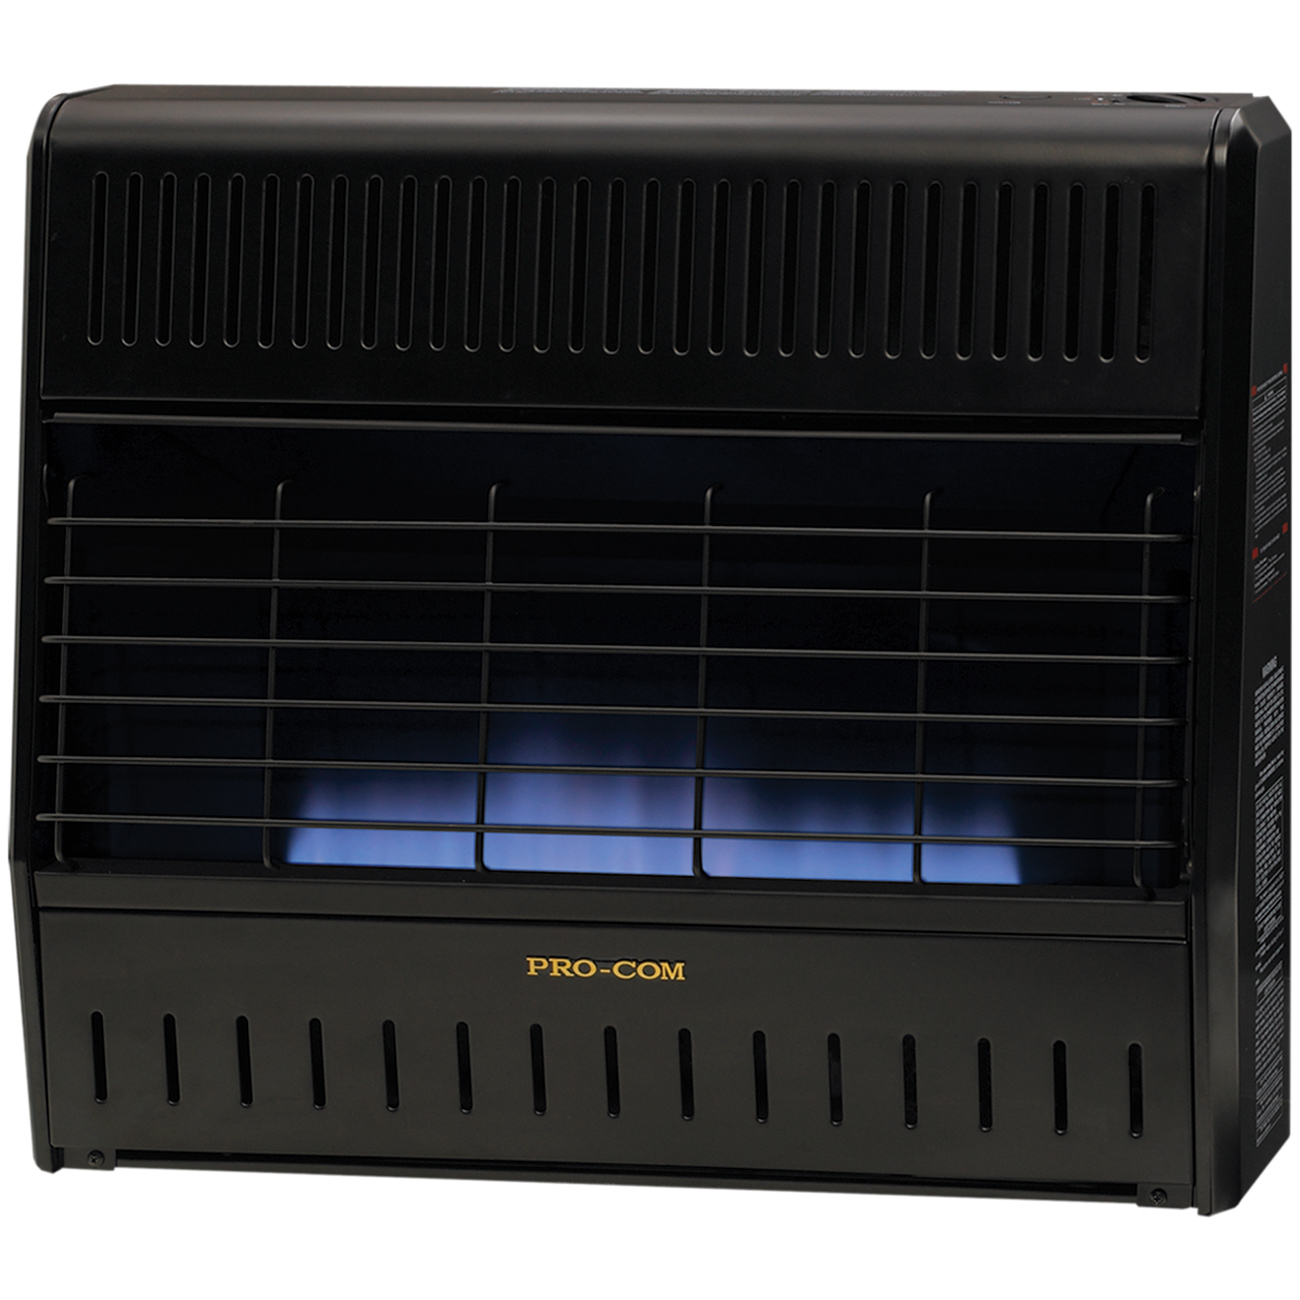 Garage Heater With Wall Thermostat Ventless Dual Fuel Blue Flame Garage Heater 30 000 Btu